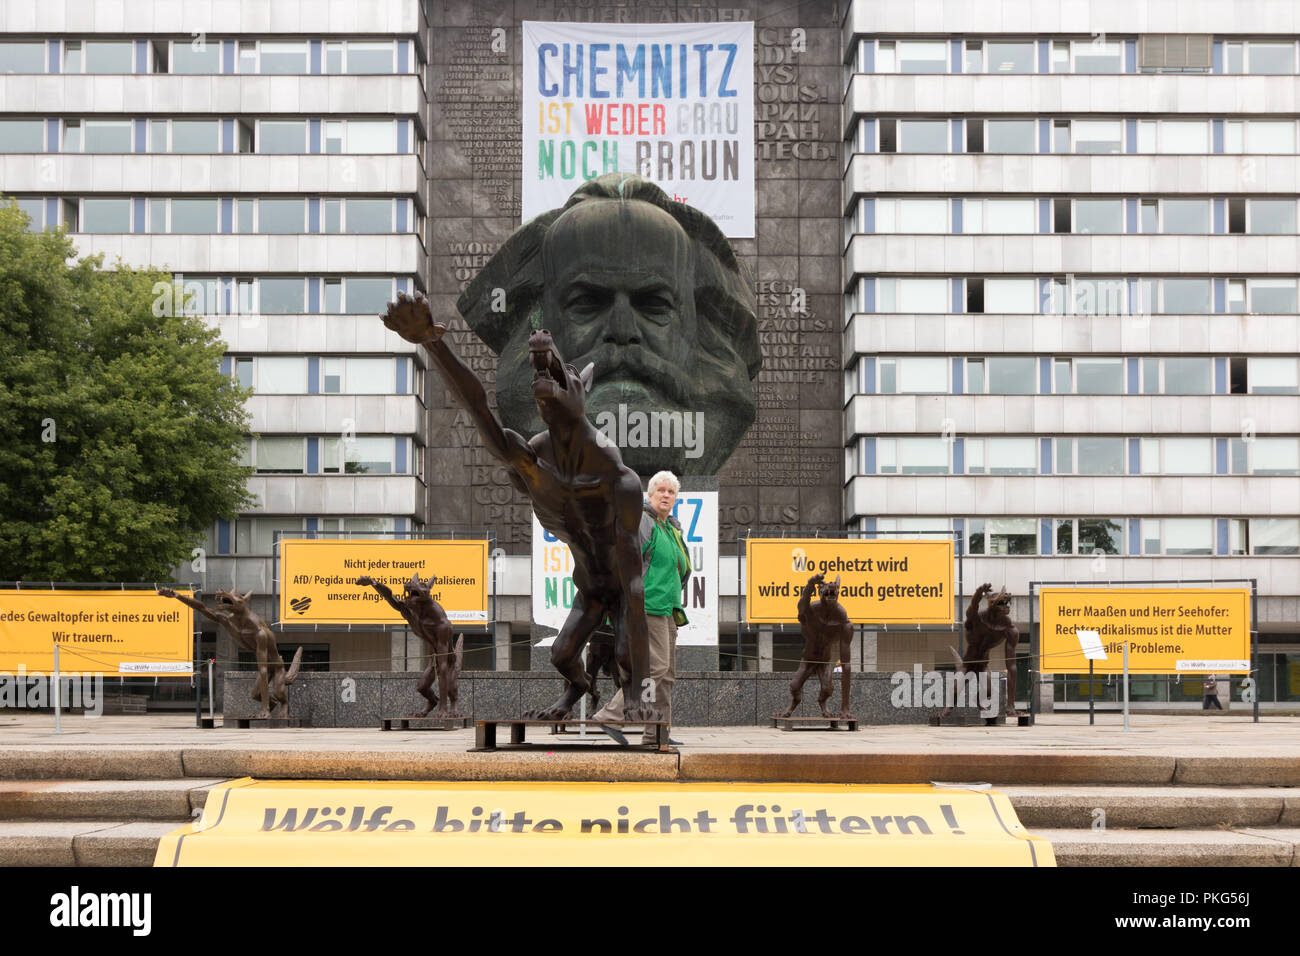 Chemnitz, Germany - September 13, 2018: A passer-by takes a look at a brass wolf saluting Heil Hitler with the National Socialists' greeting. The installation by the artist Rainer Opolka, which was set up today, is intended to counter a sign against hatred and violence after the great right-wing demonstrations a good two weeks after the murder of a German in Chemnitz by refugees. Credit: Mattis Kaminer/Alamy Live News - Stock Image